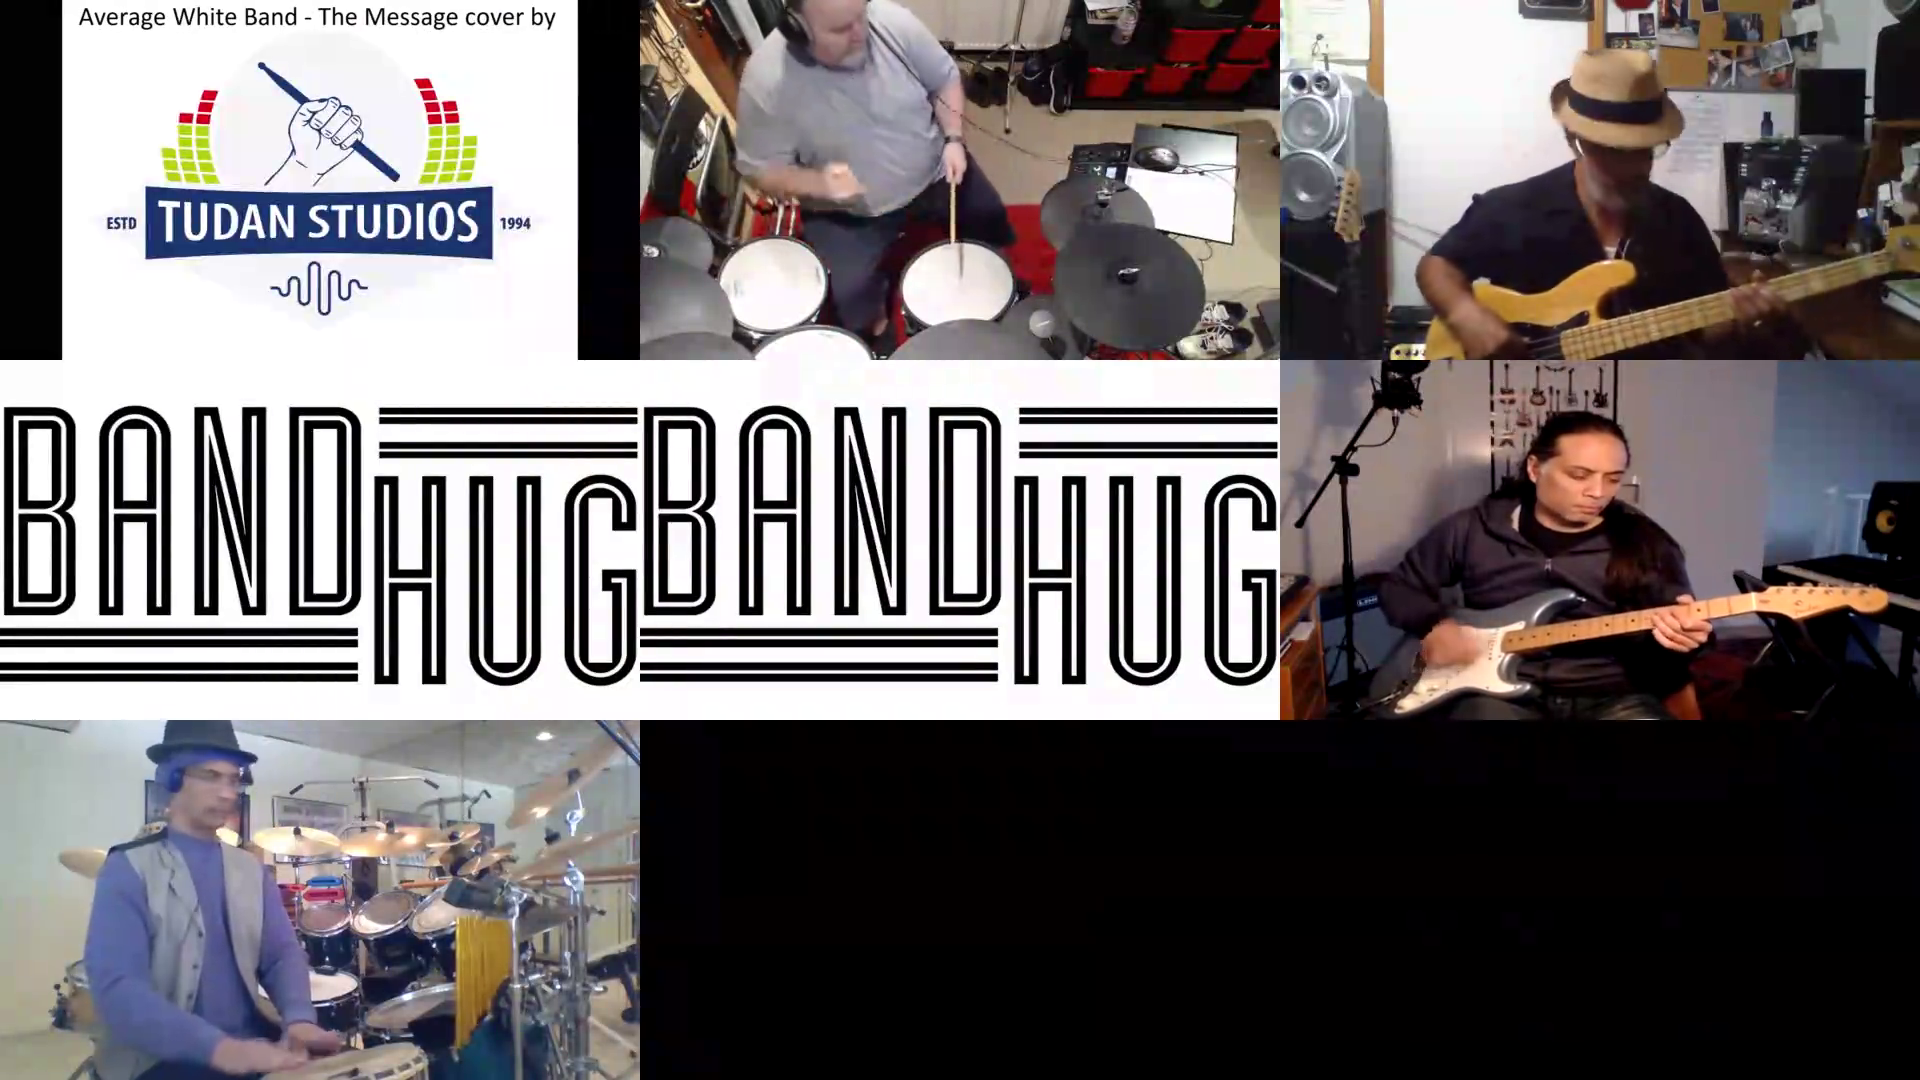 Average White Band - The message cover by Tudanstudios